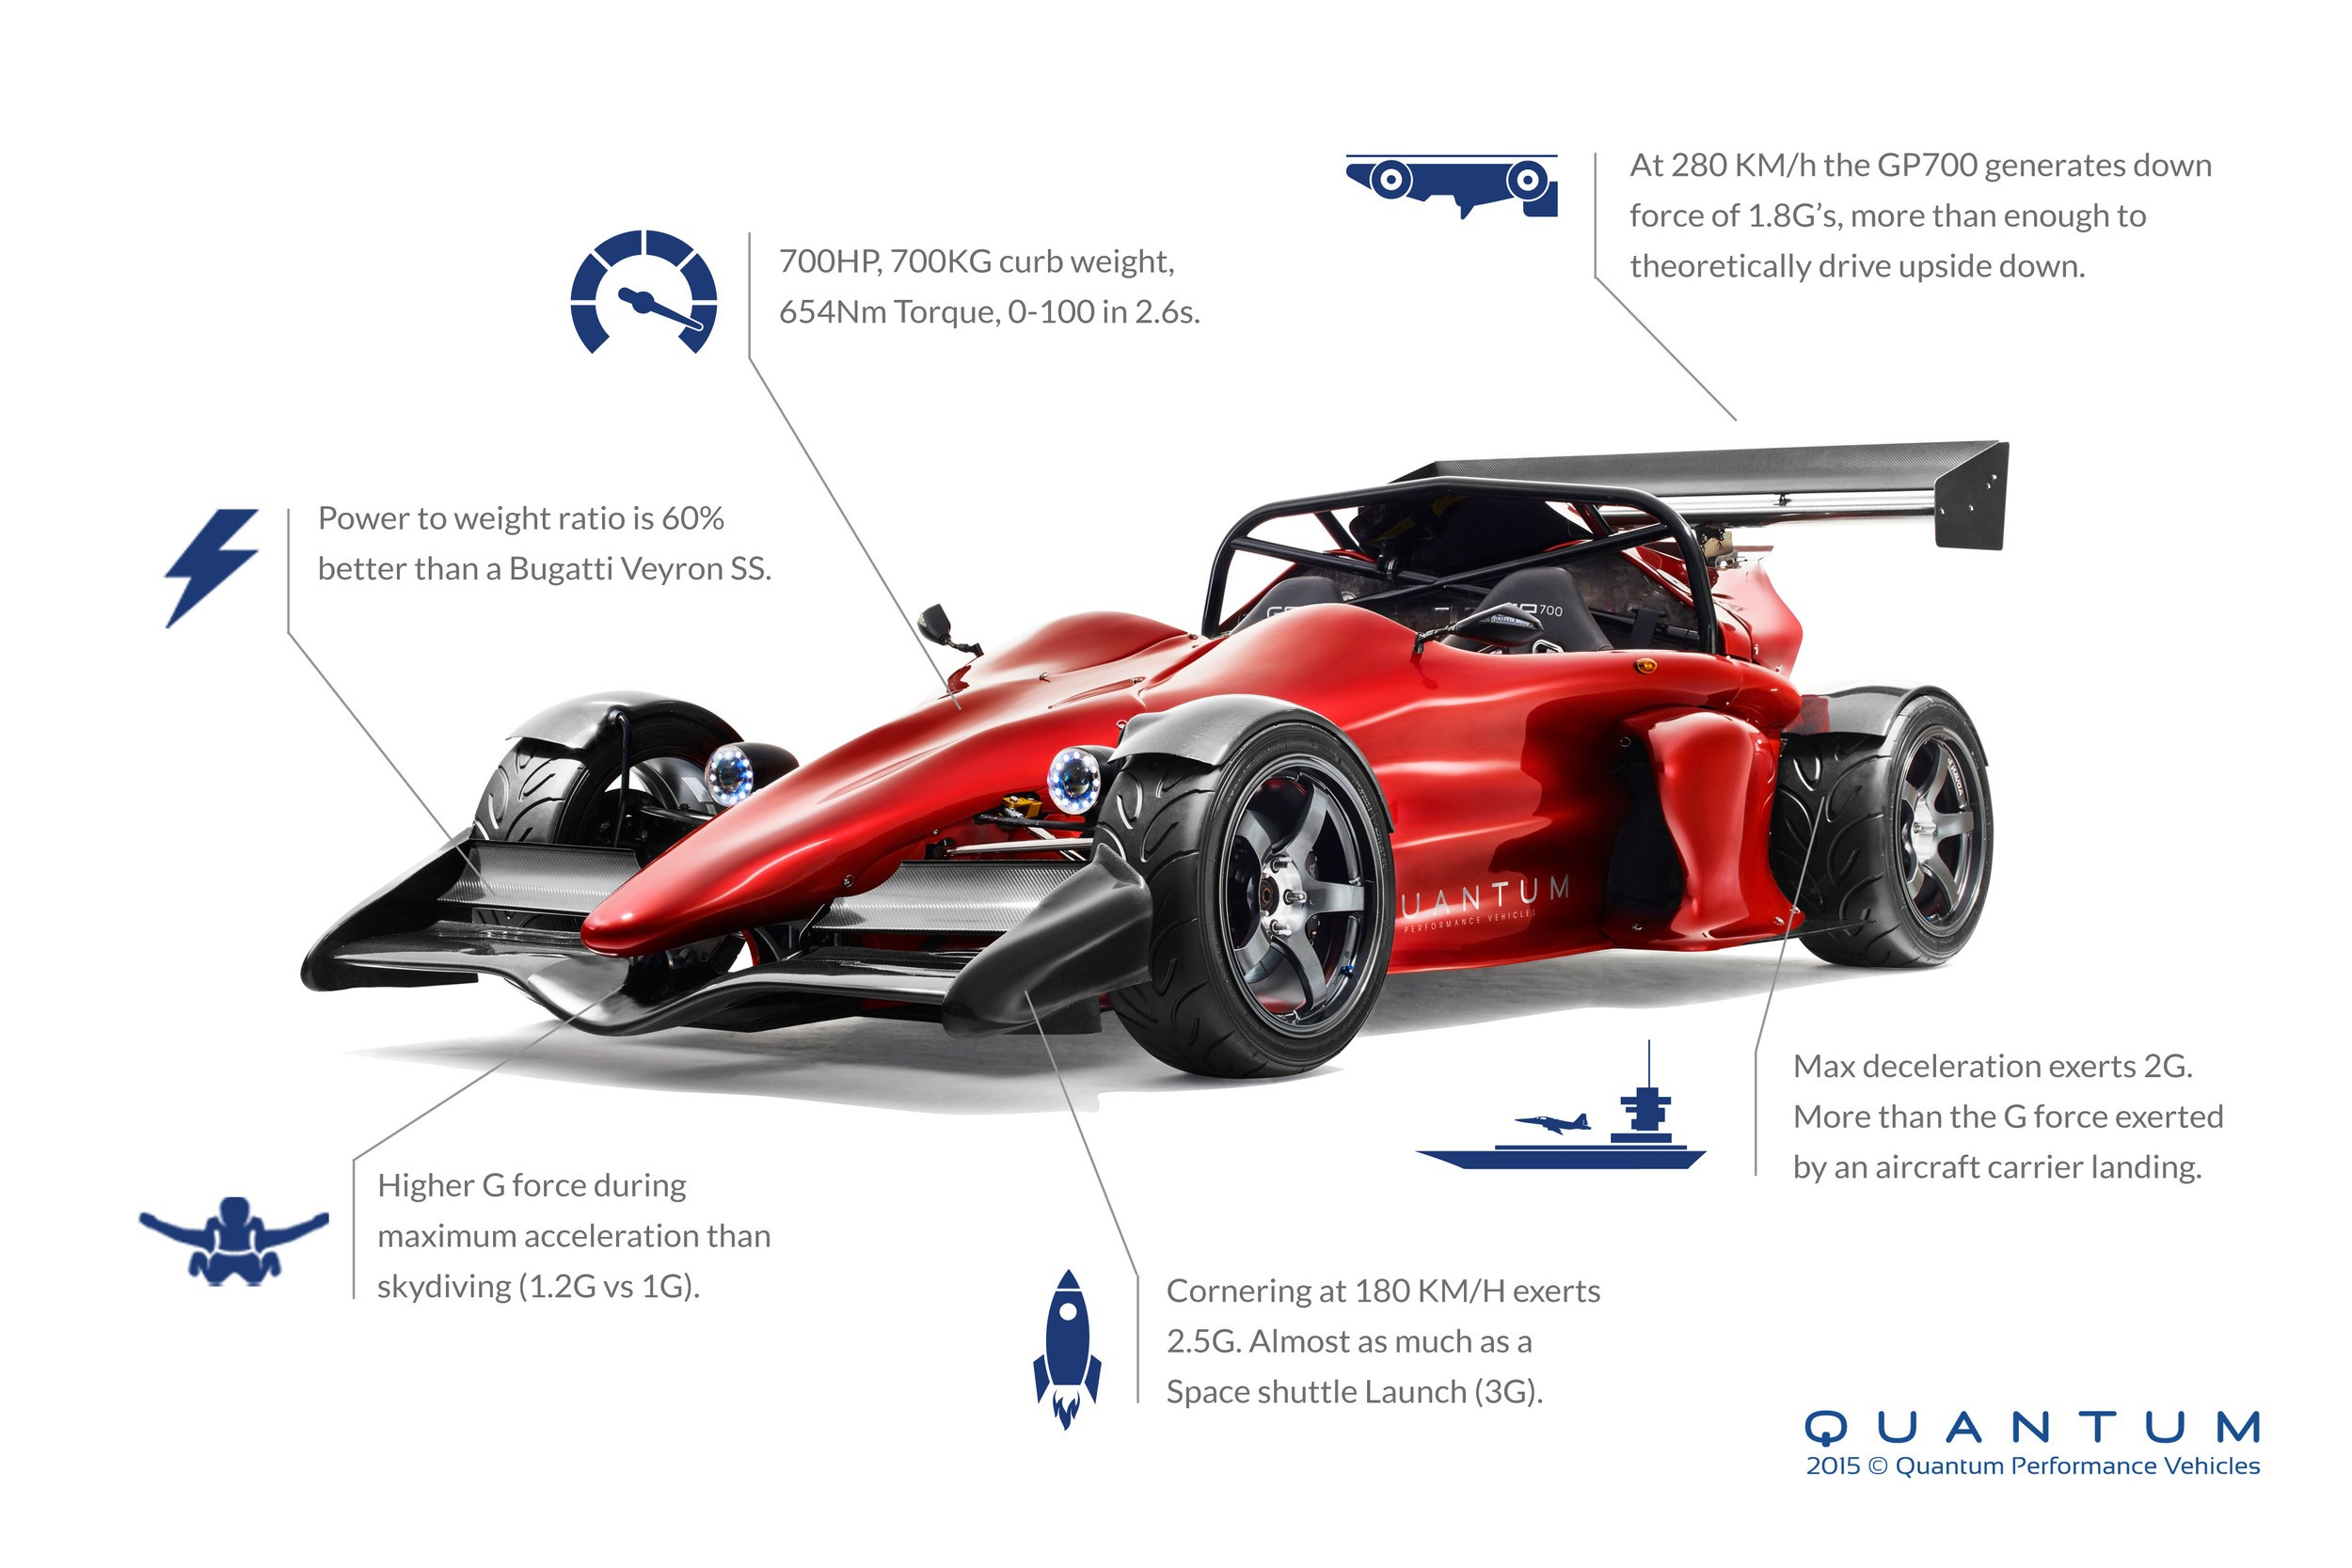 forget-the-ariel-atom-500-v8-heres-the-700-hp-quantum-gp700-video-photo-gallery_1